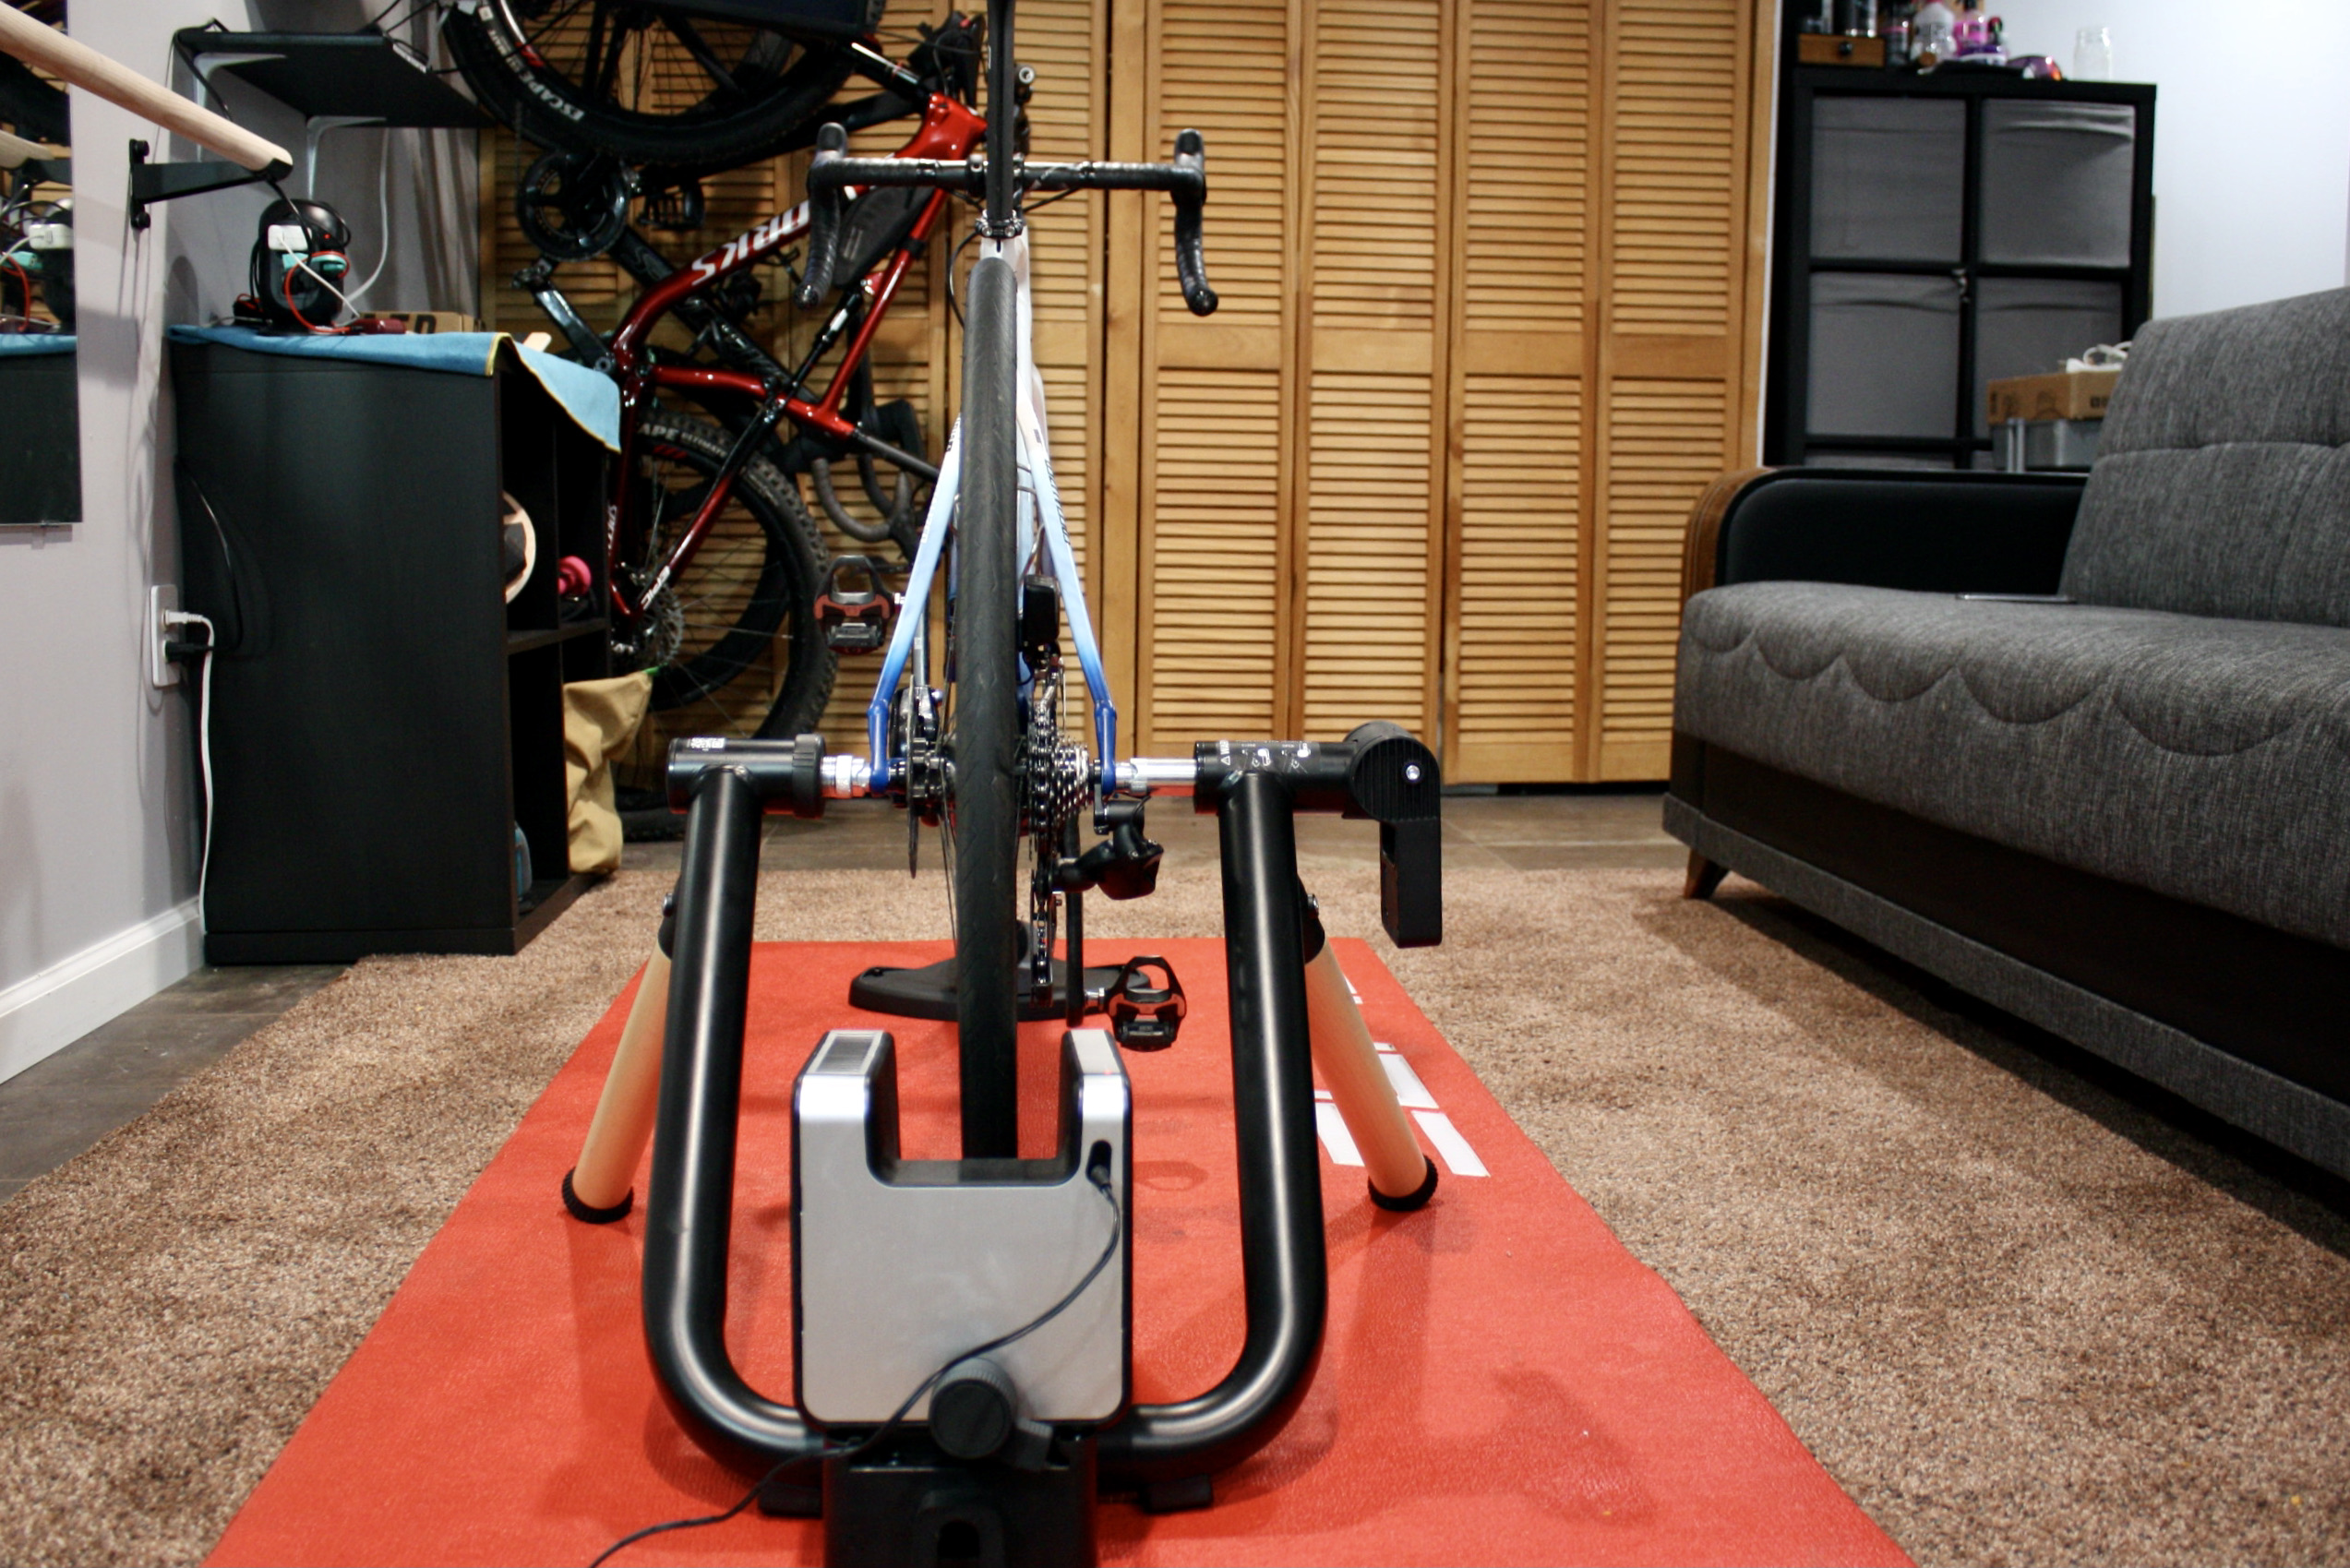 Elite Tuo Trainer Review attachment roller wheel rear view